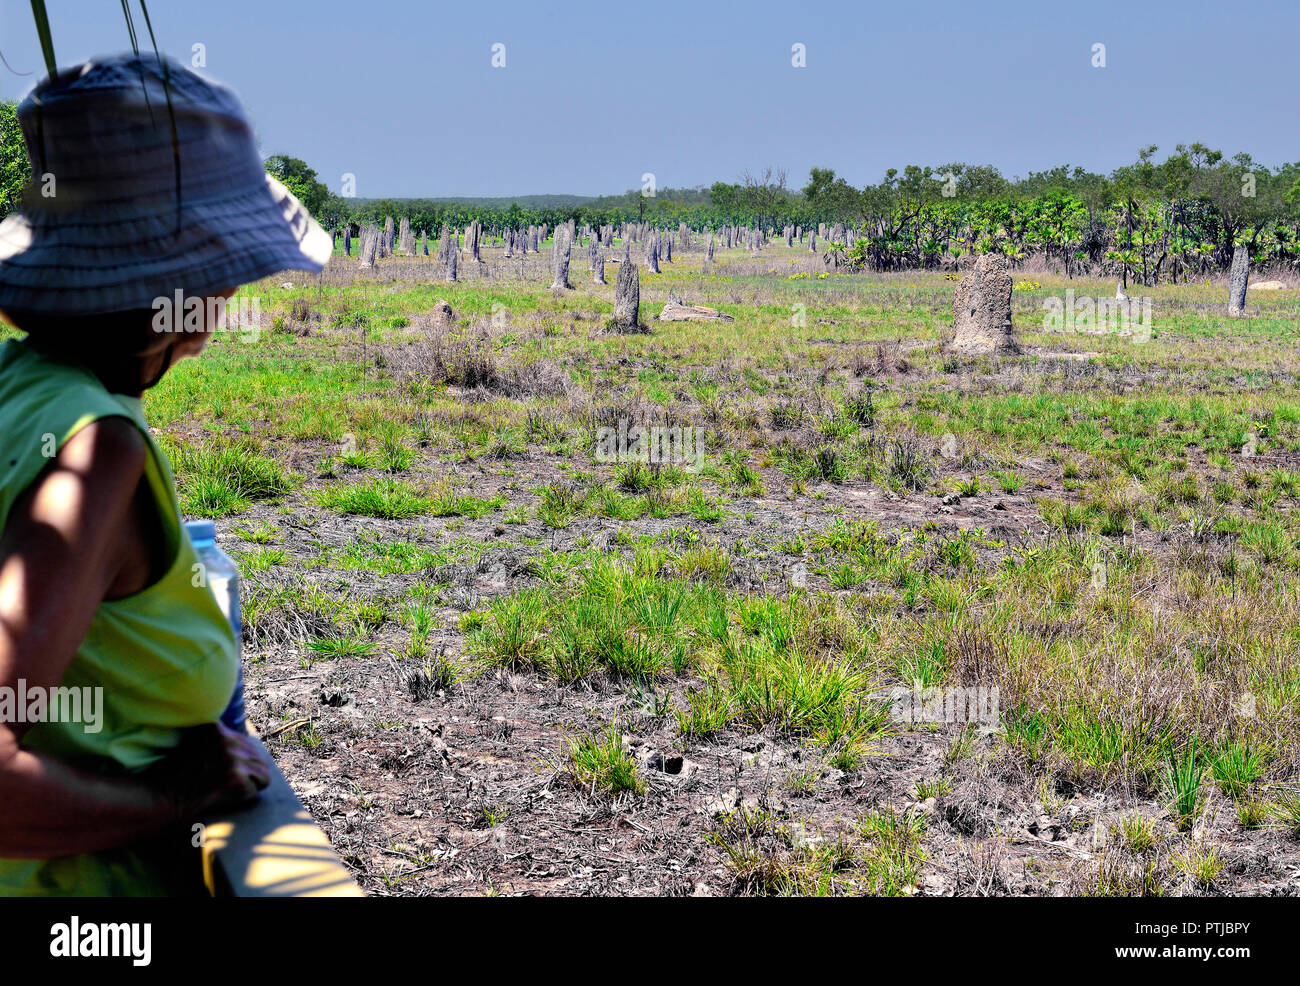 Woman Tourist on the visitors area looking at the Magnetic Termite Mounds, Lichfield National Park, Northern Territory, Australia - Stock Image